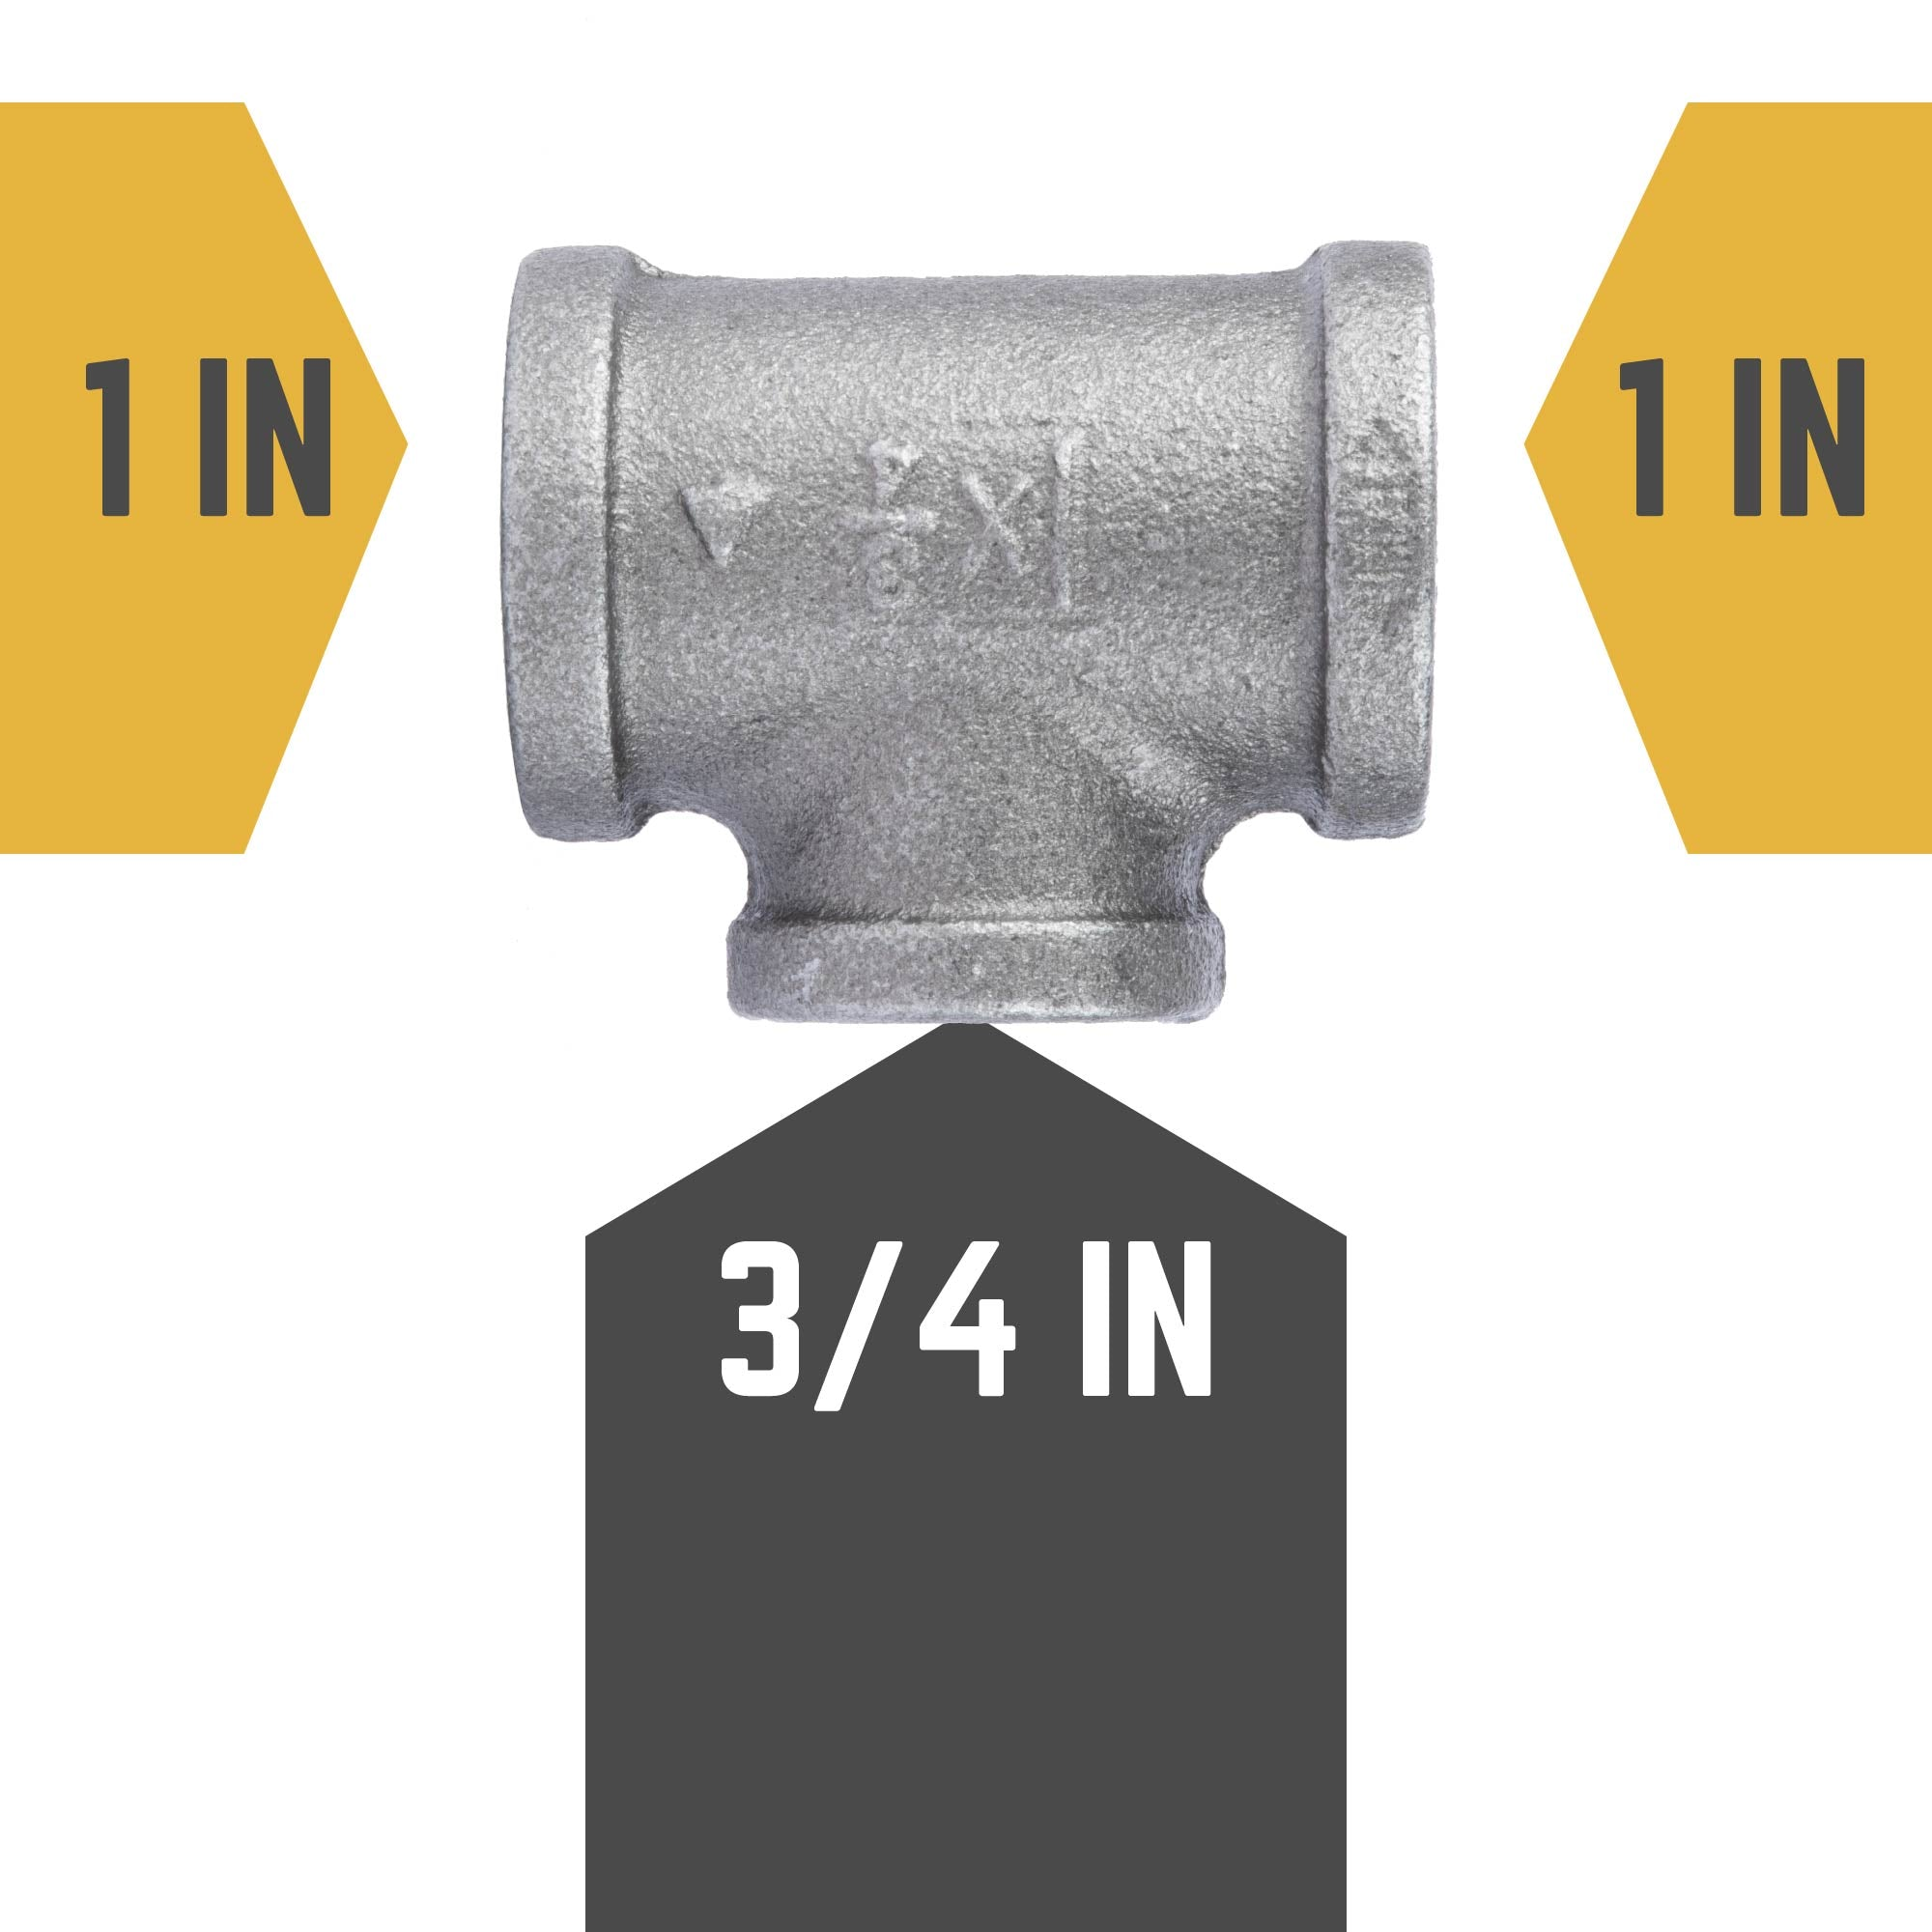 1 in. X 1 in. X 3/4 in. Reducing Tee - Pipe Decor